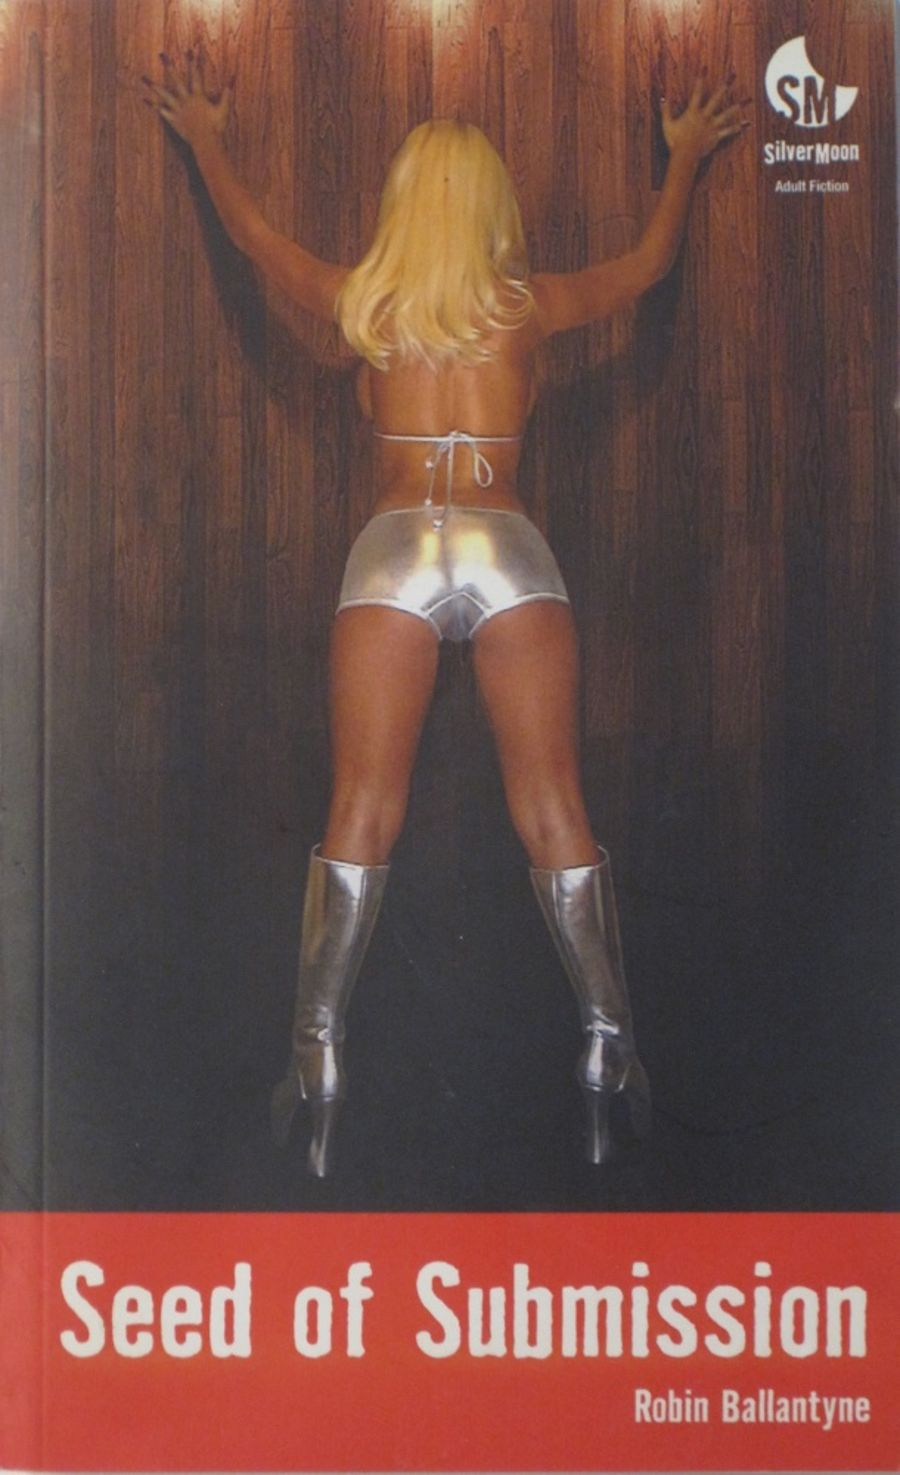 SEED OF SUBMISSION. 2010 EROTIC FICTION PAPERBACK BOOK.